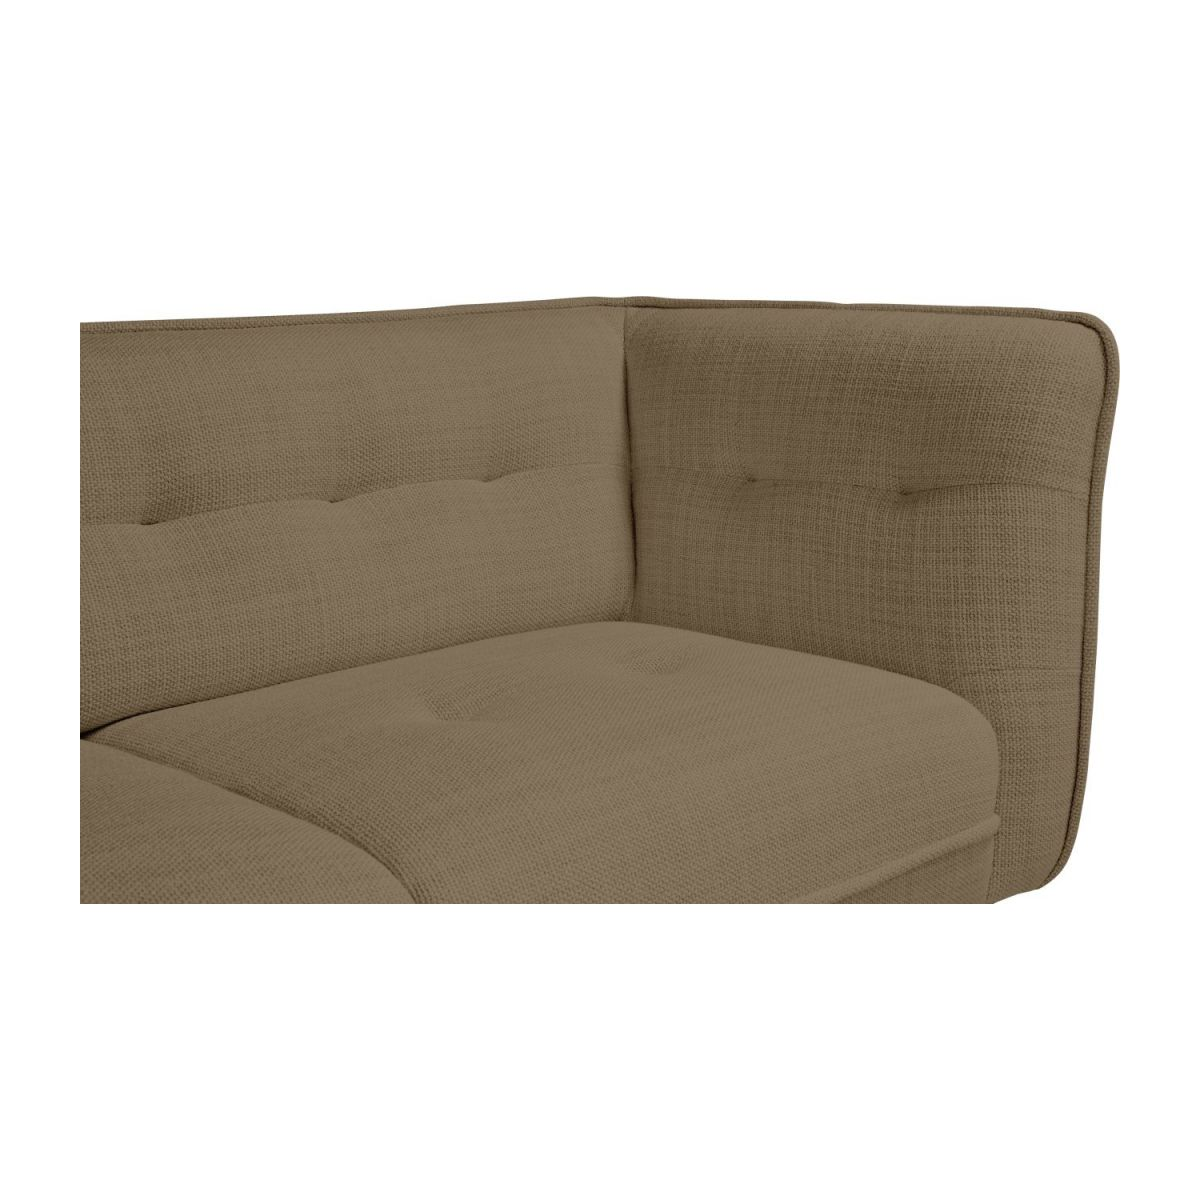 2 seater sofa in Fasoli fabric, jatoba brown and oak legs n°7